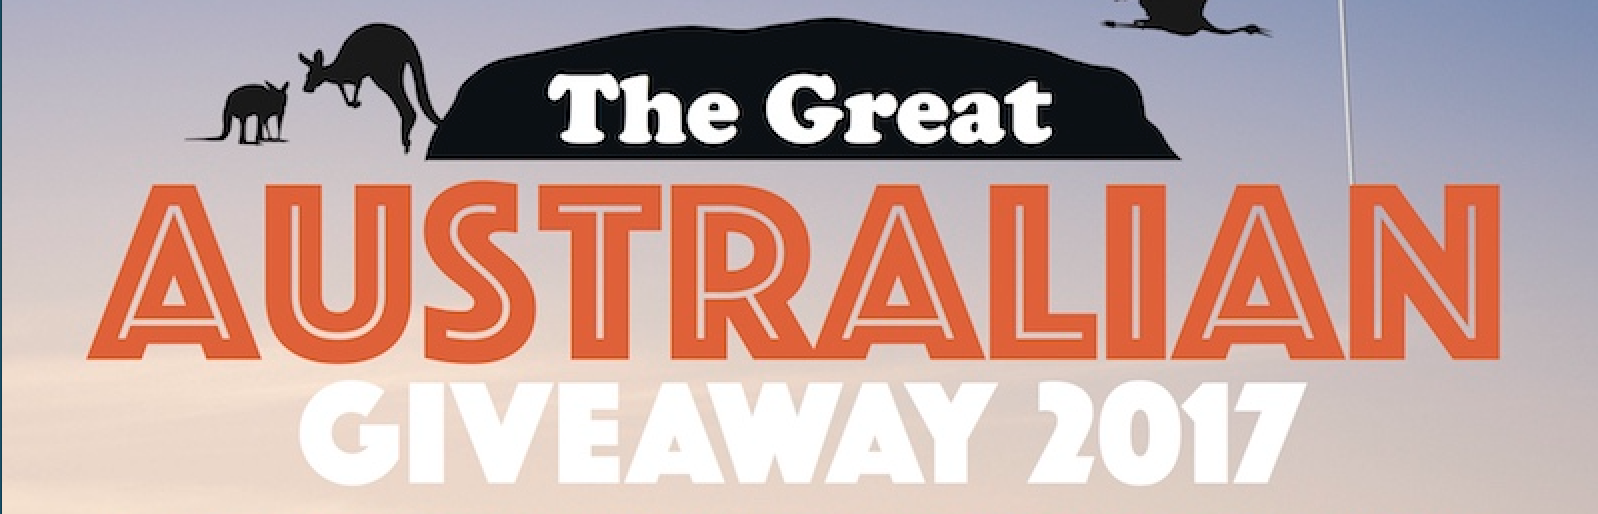 The Great Australian Giveaway 2017